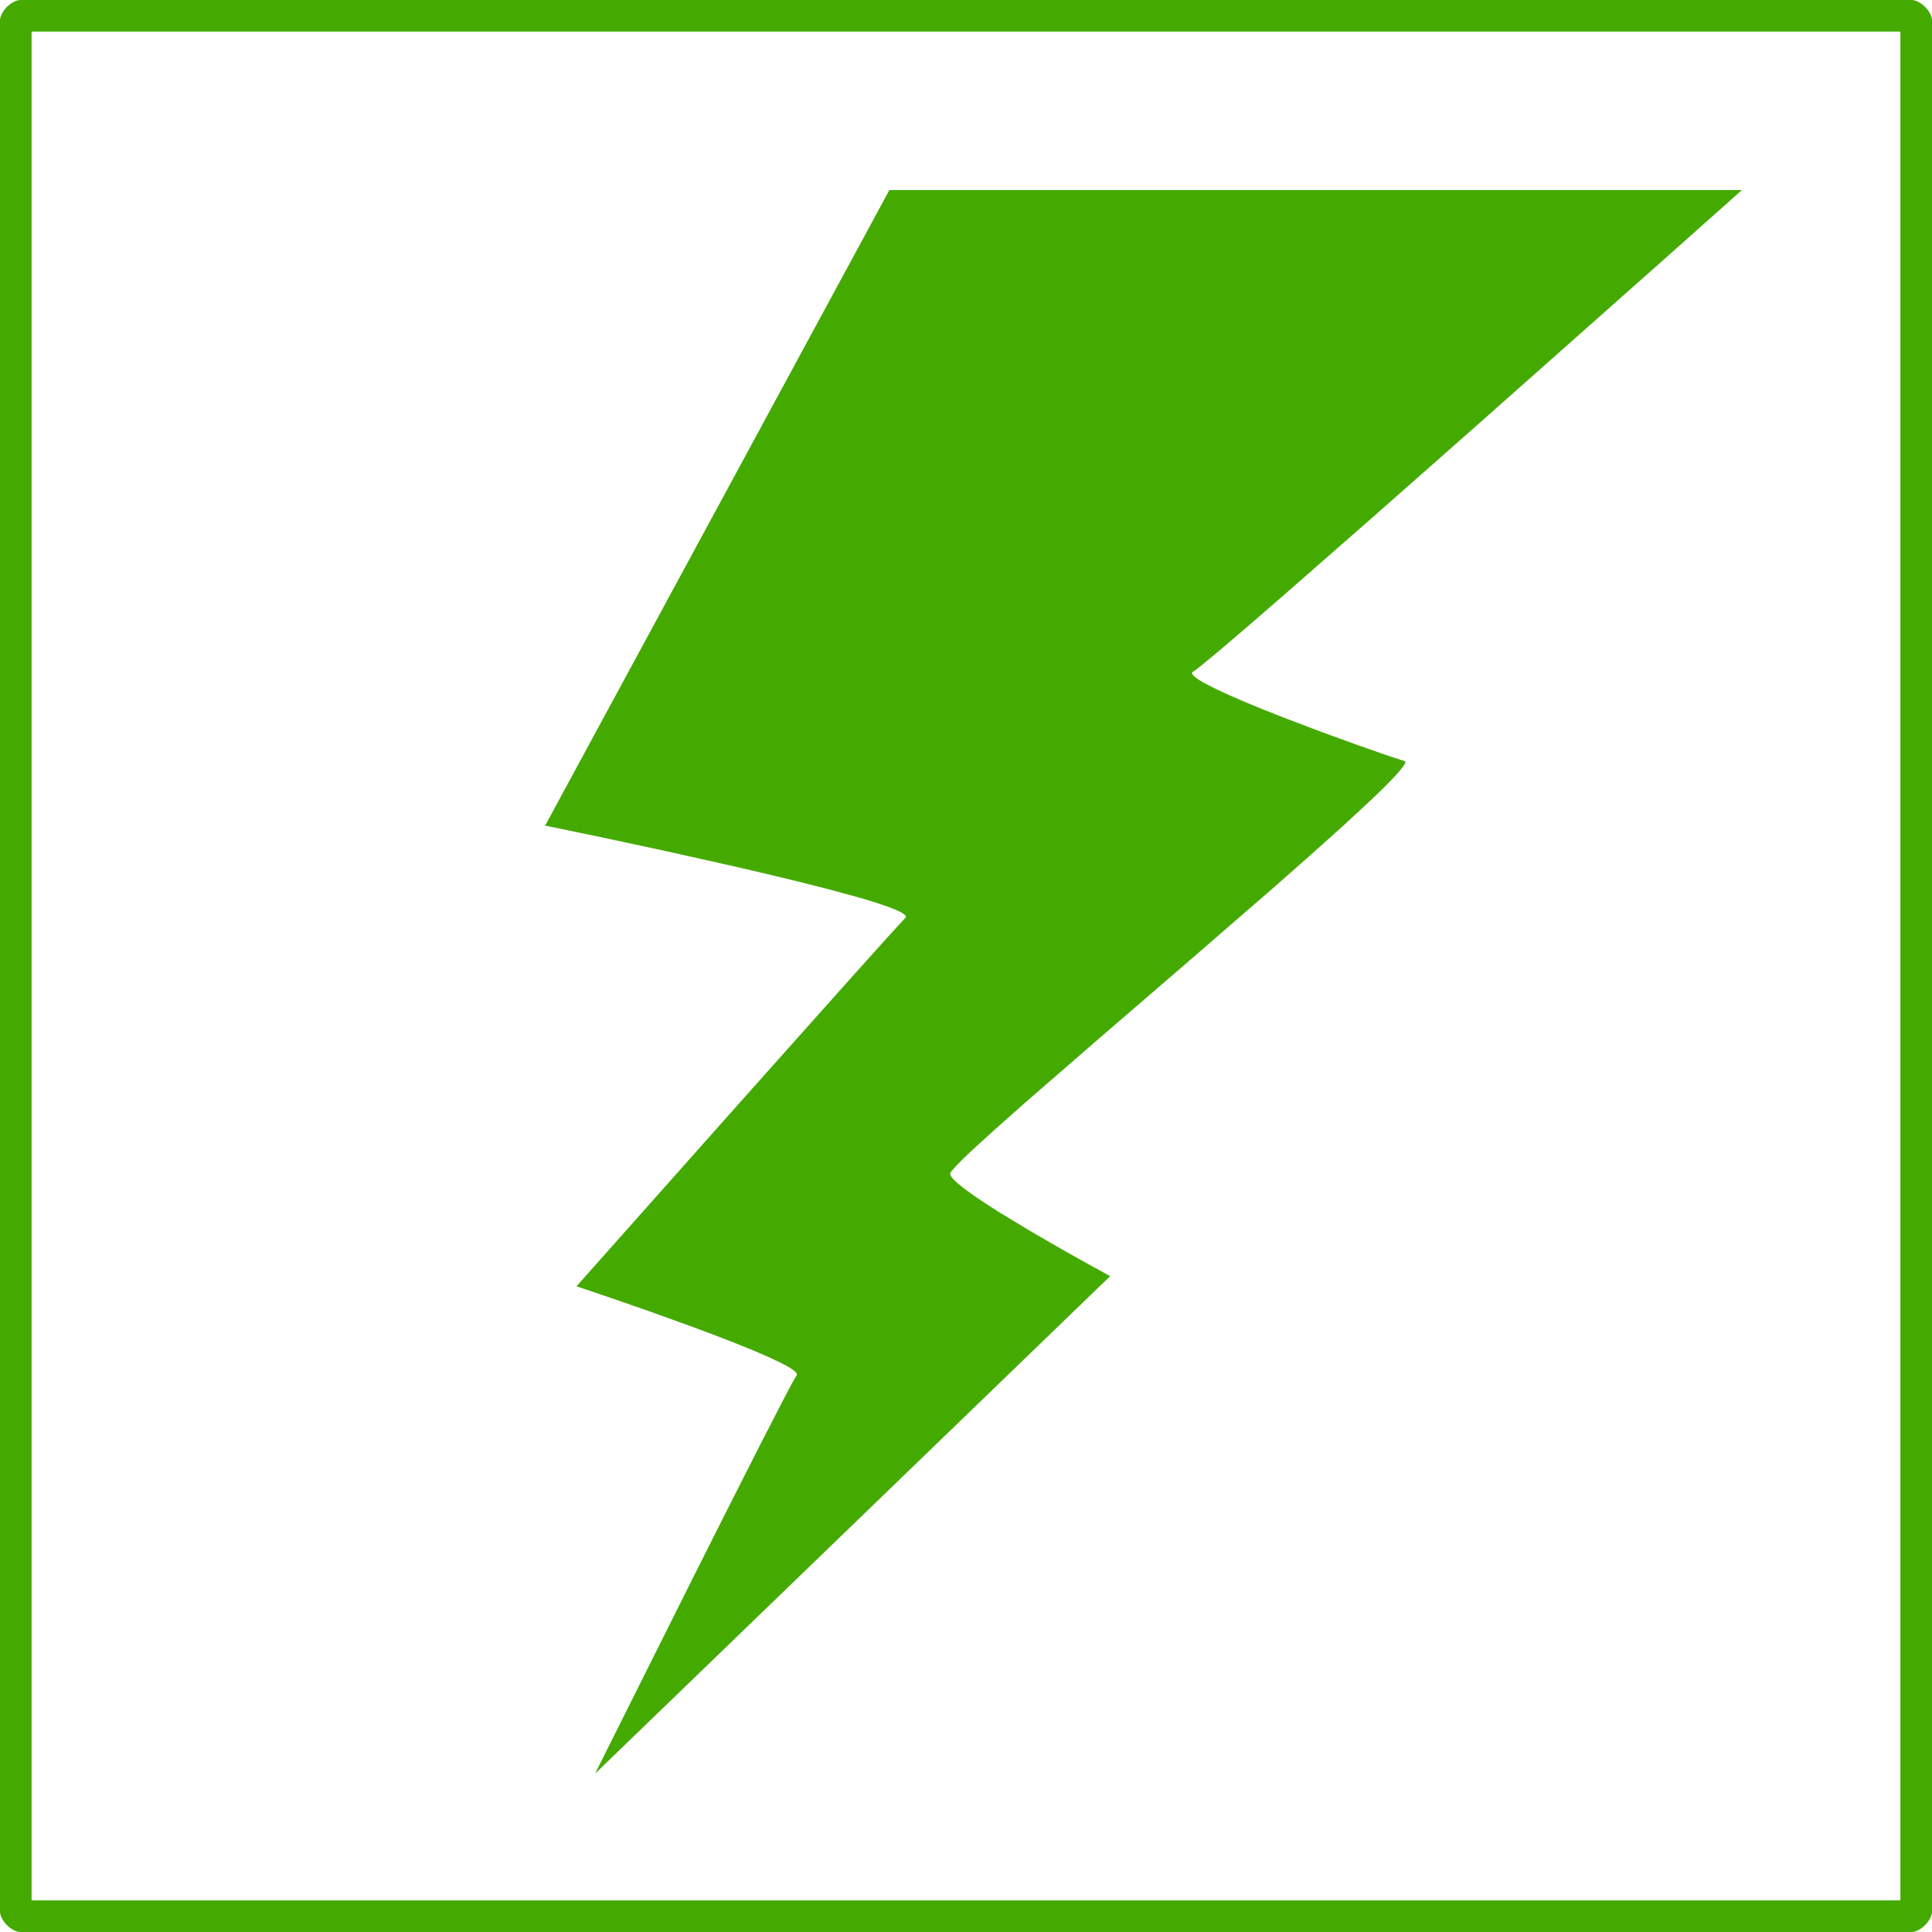 Clipart eco green energy icon